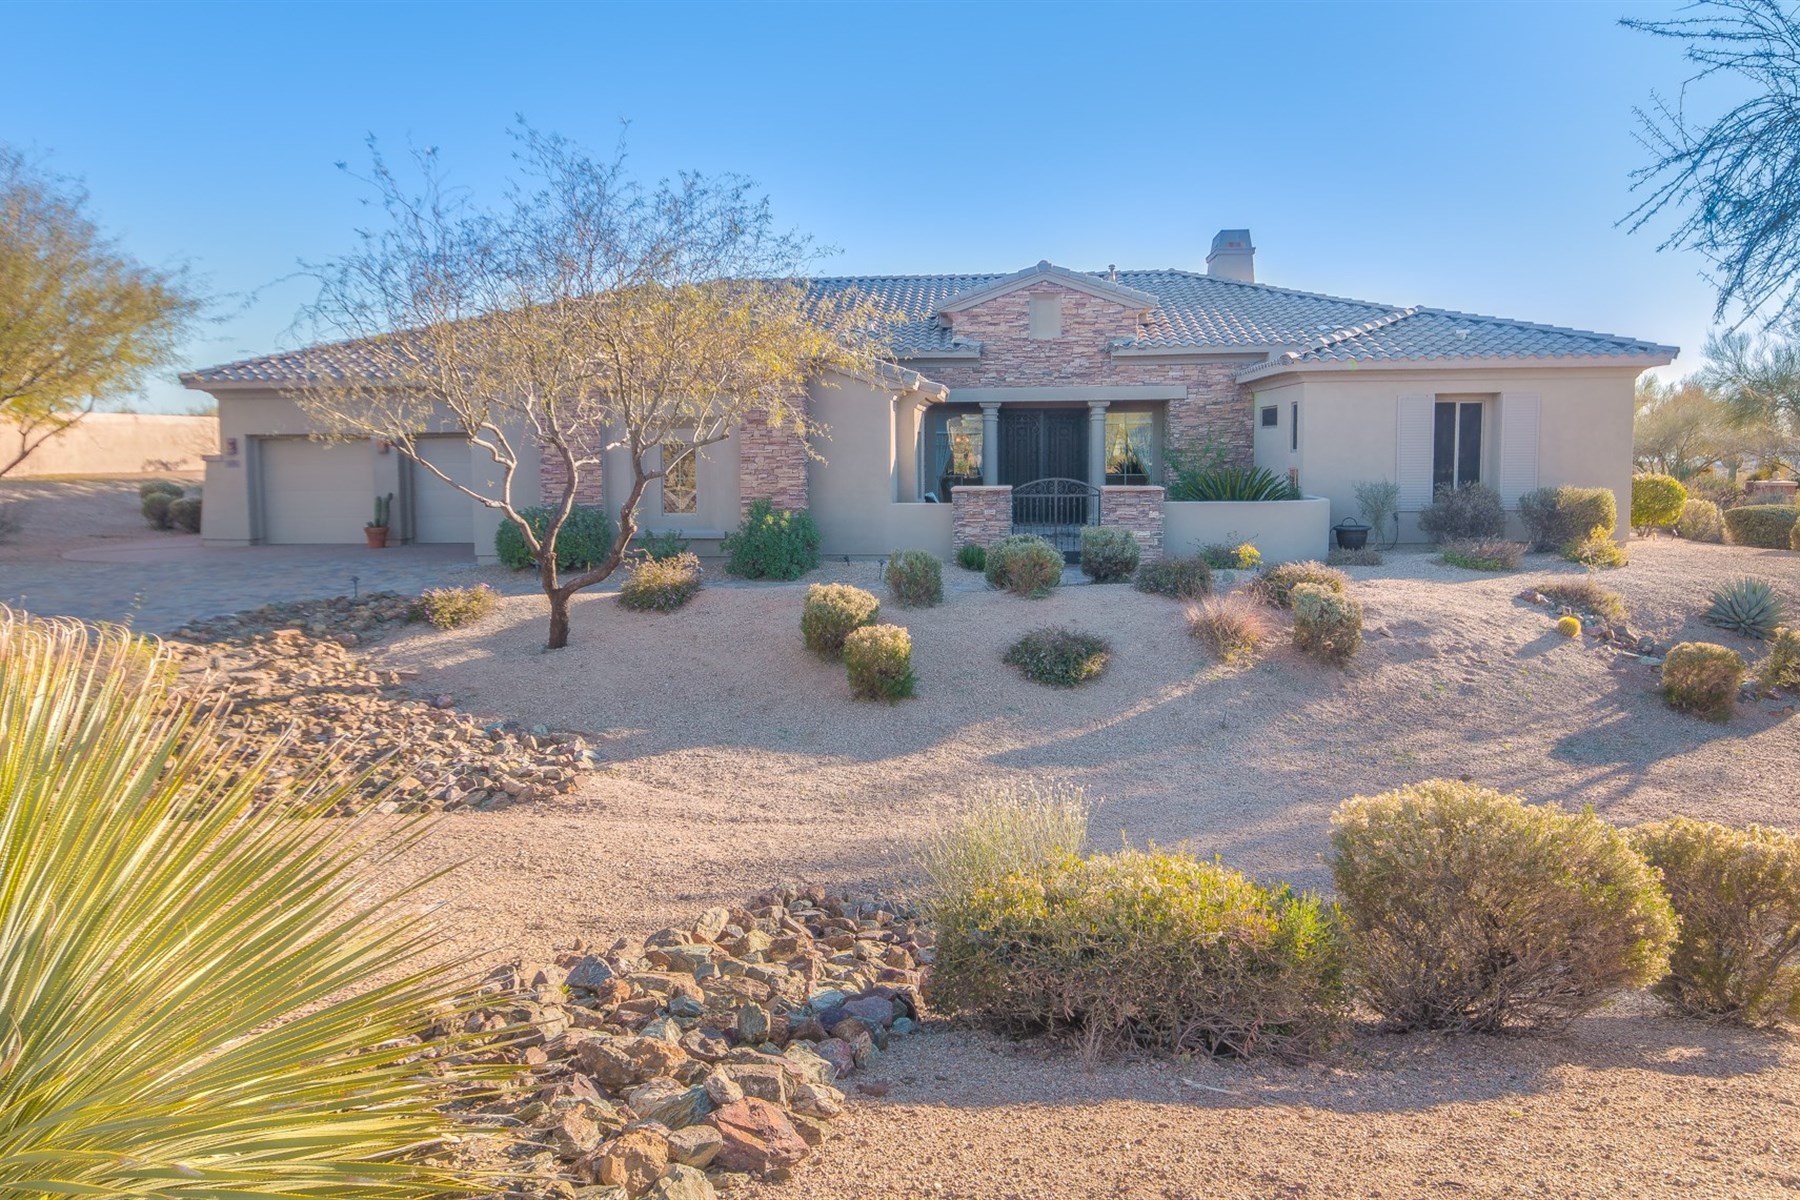 Einfamilienhaus für Verkauf beim Stunning home is intimately nestled in the magnificent high Sonoran desert scape 9705 E Suncrest Rd Scottsdale, Arizona 85262 Vereinigte Staaten